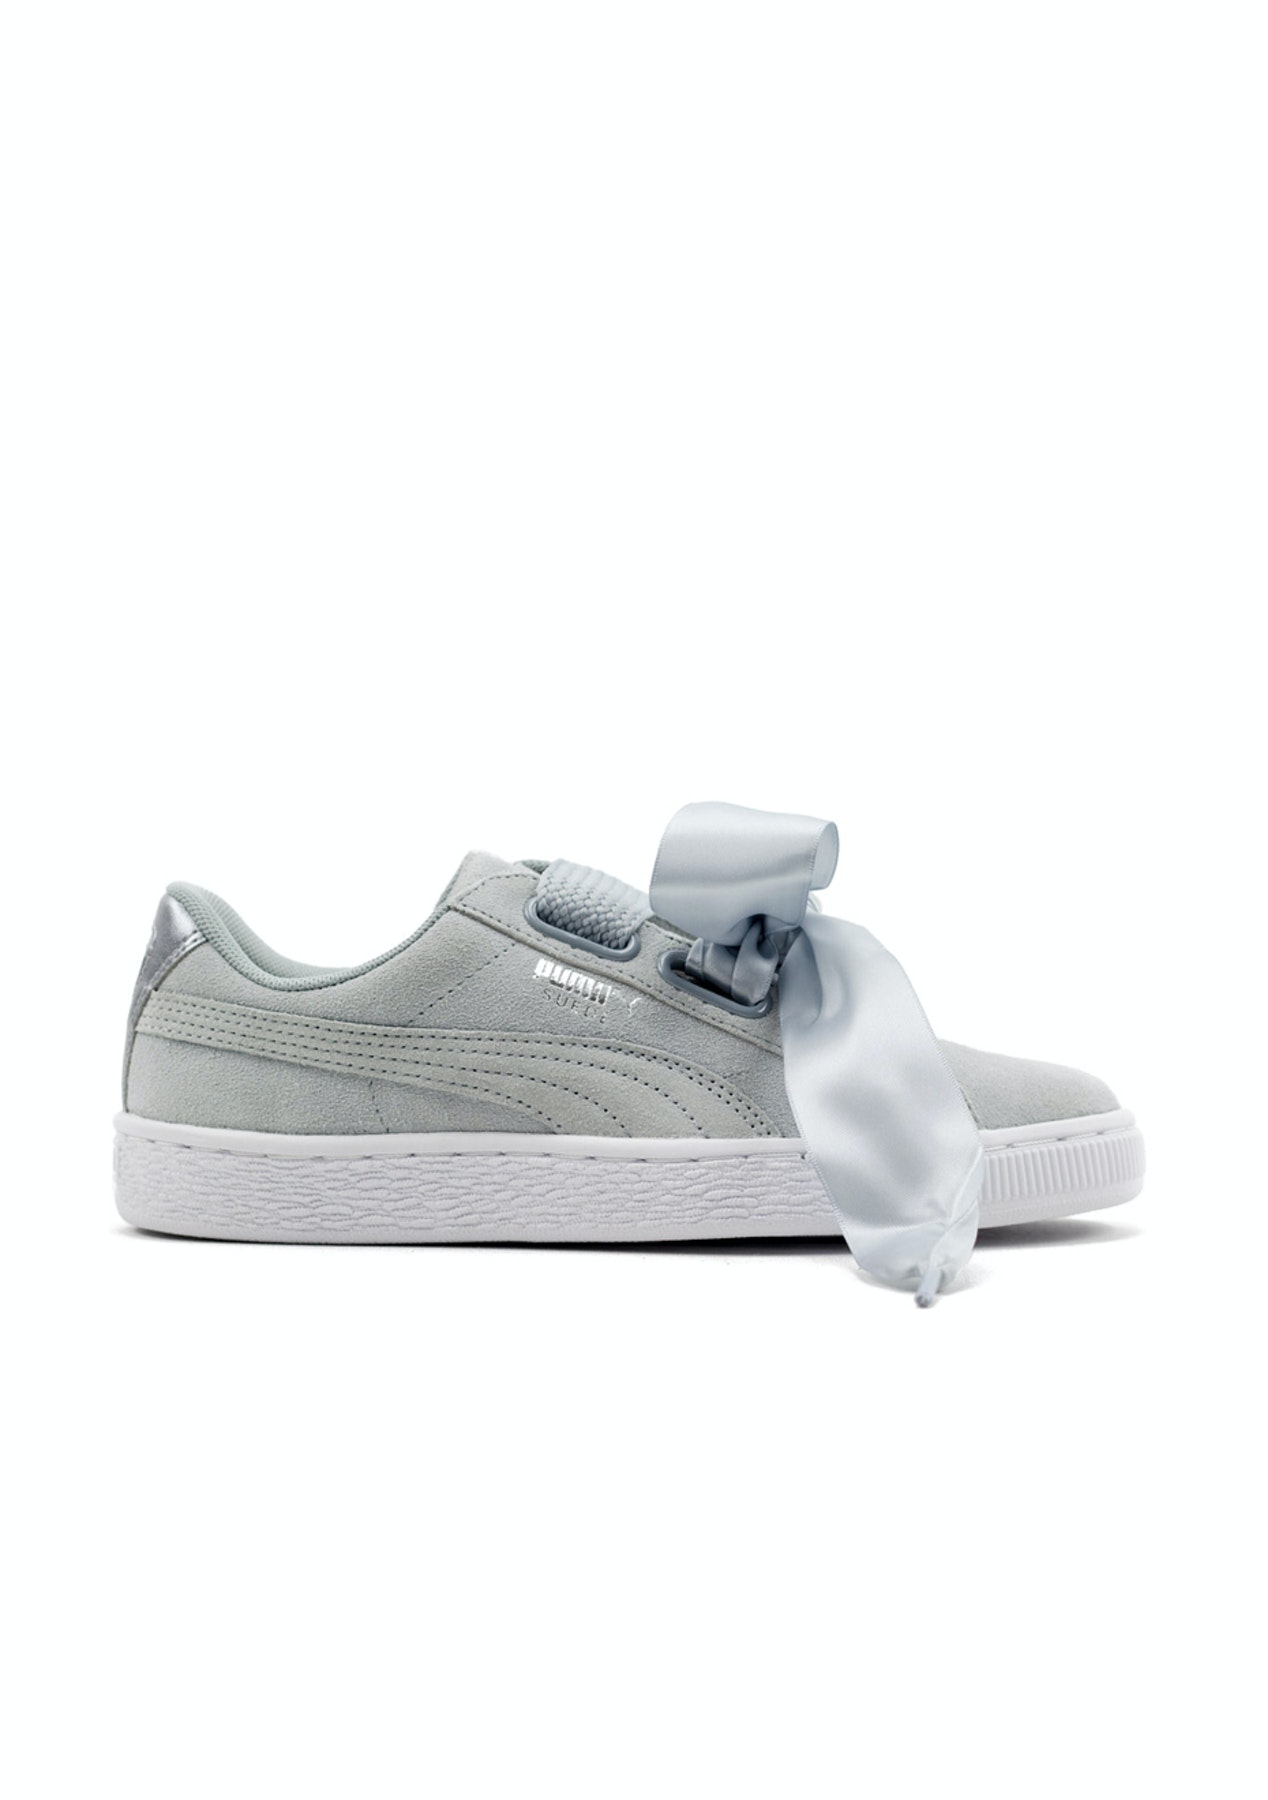 new product acb13 6e56c Puma Womens - Suede Heart Safari Quarry